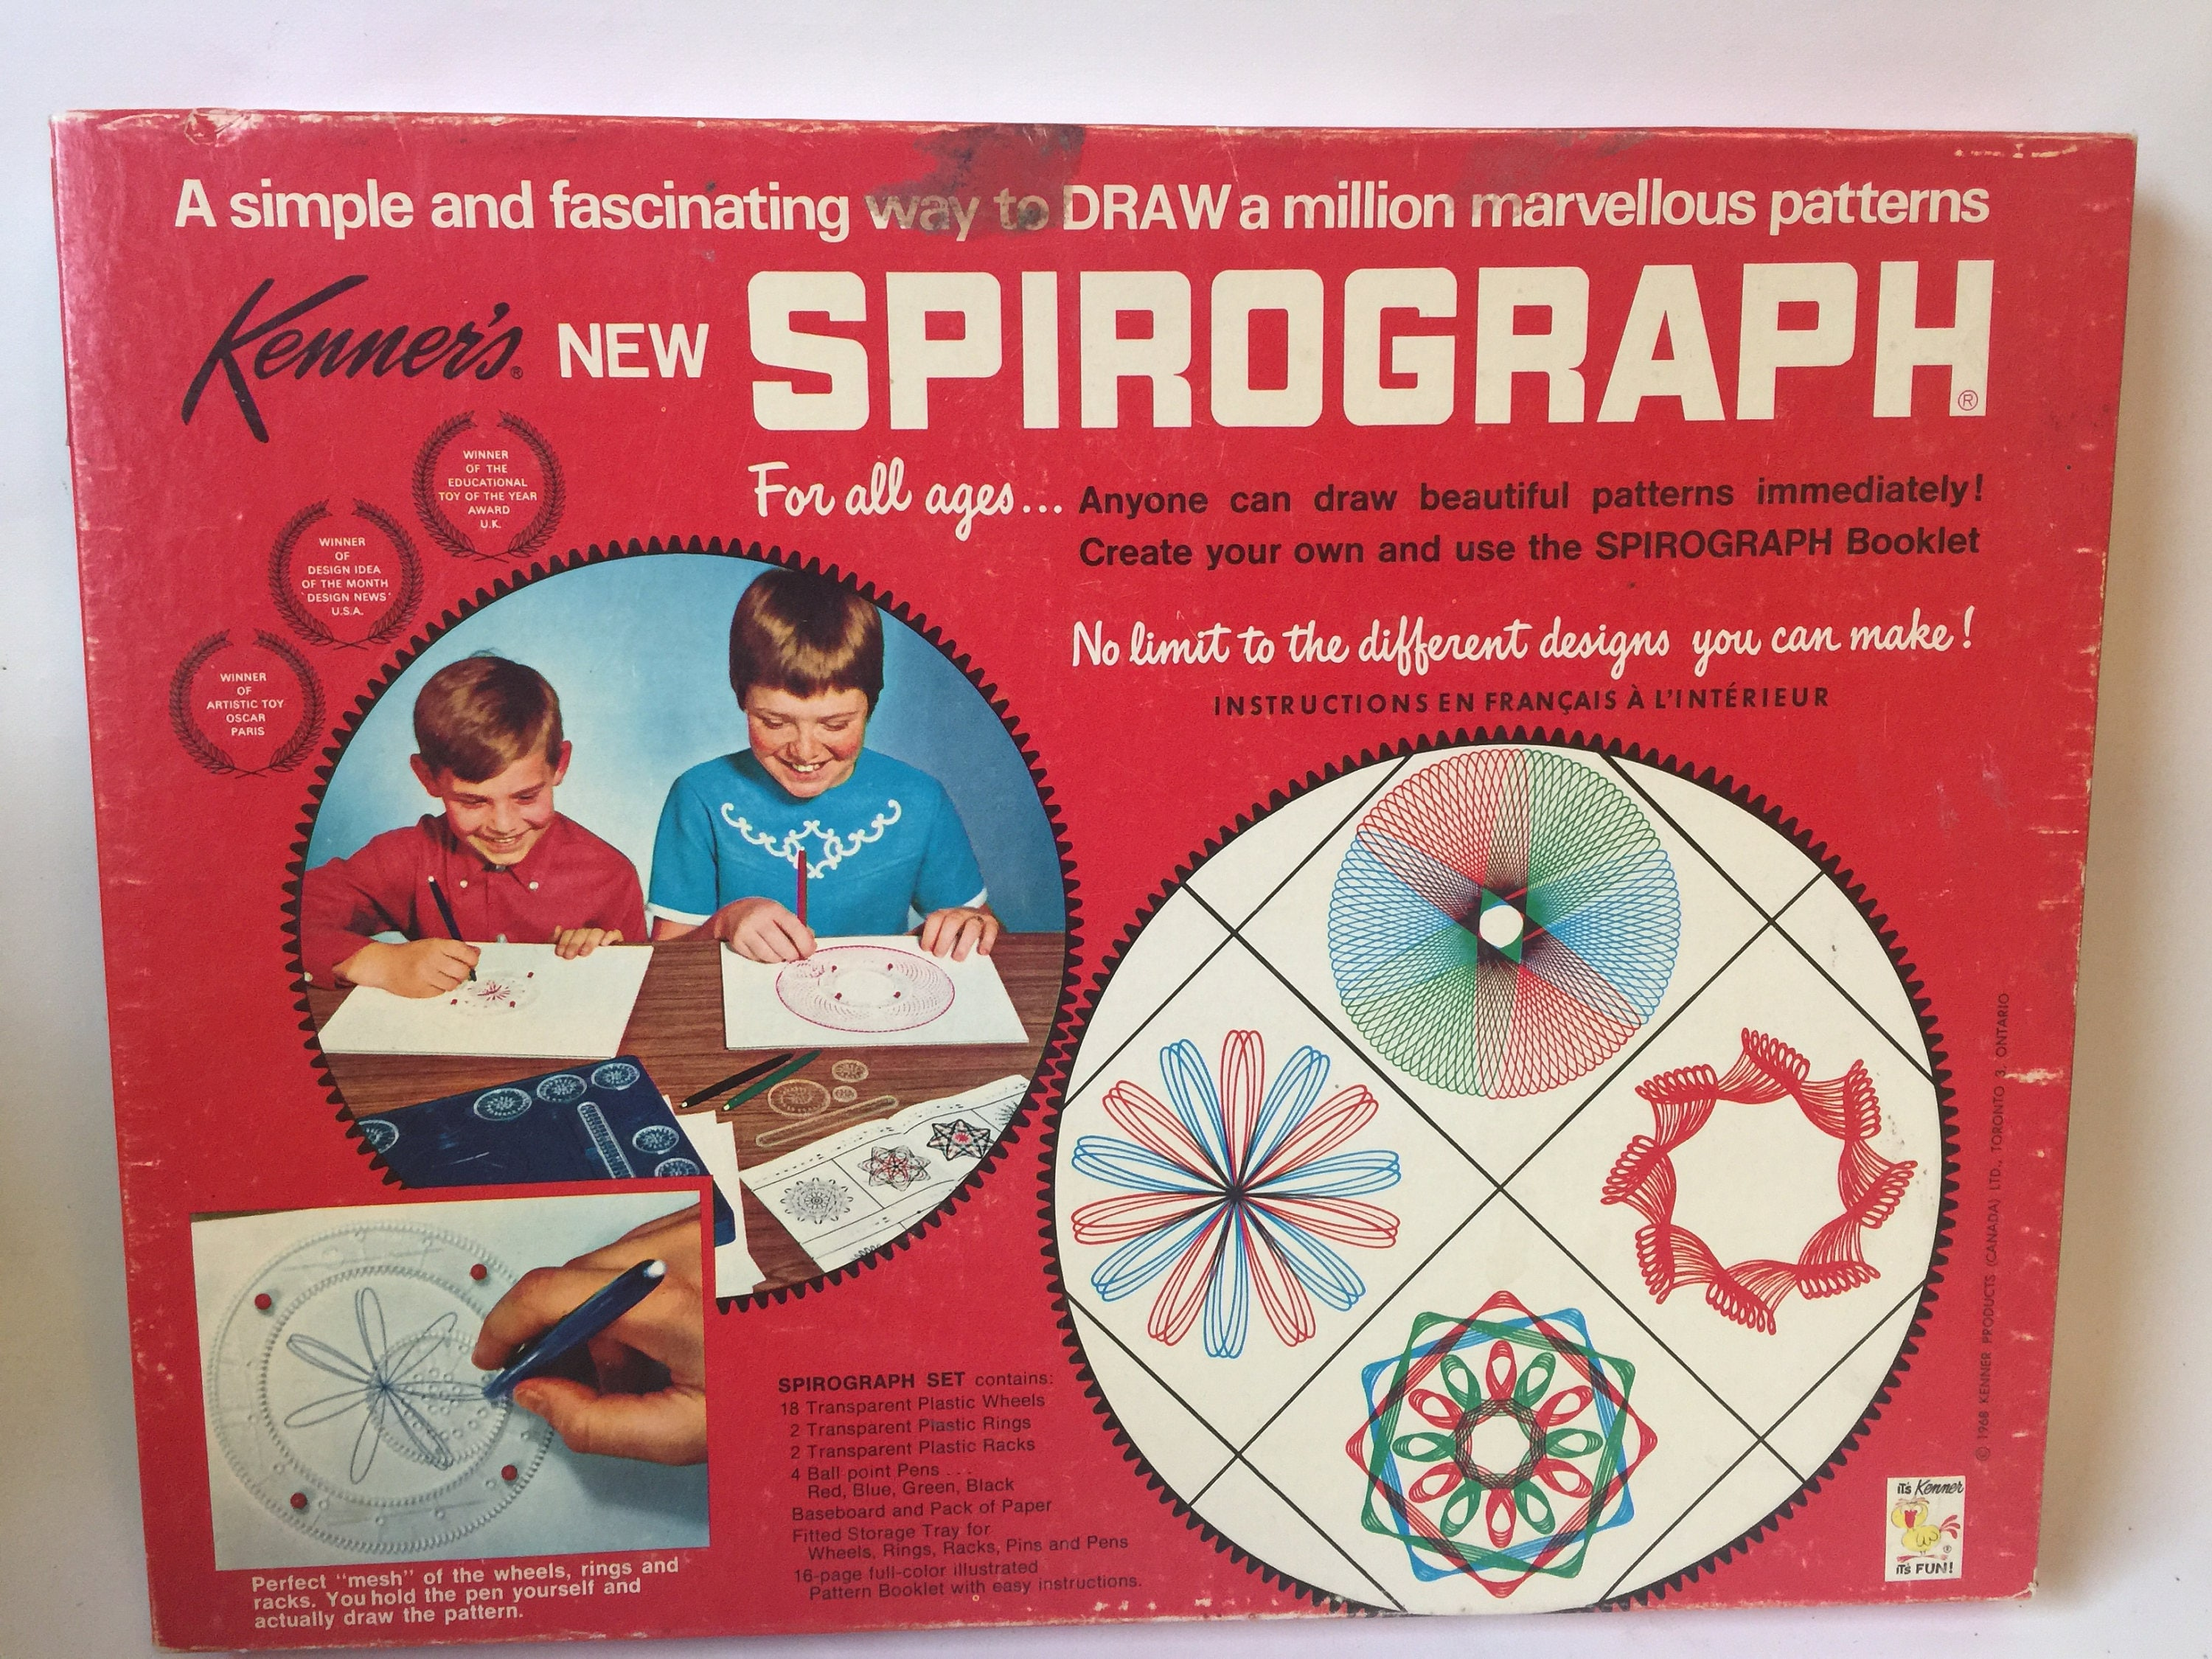 where can i buy a spirograph set